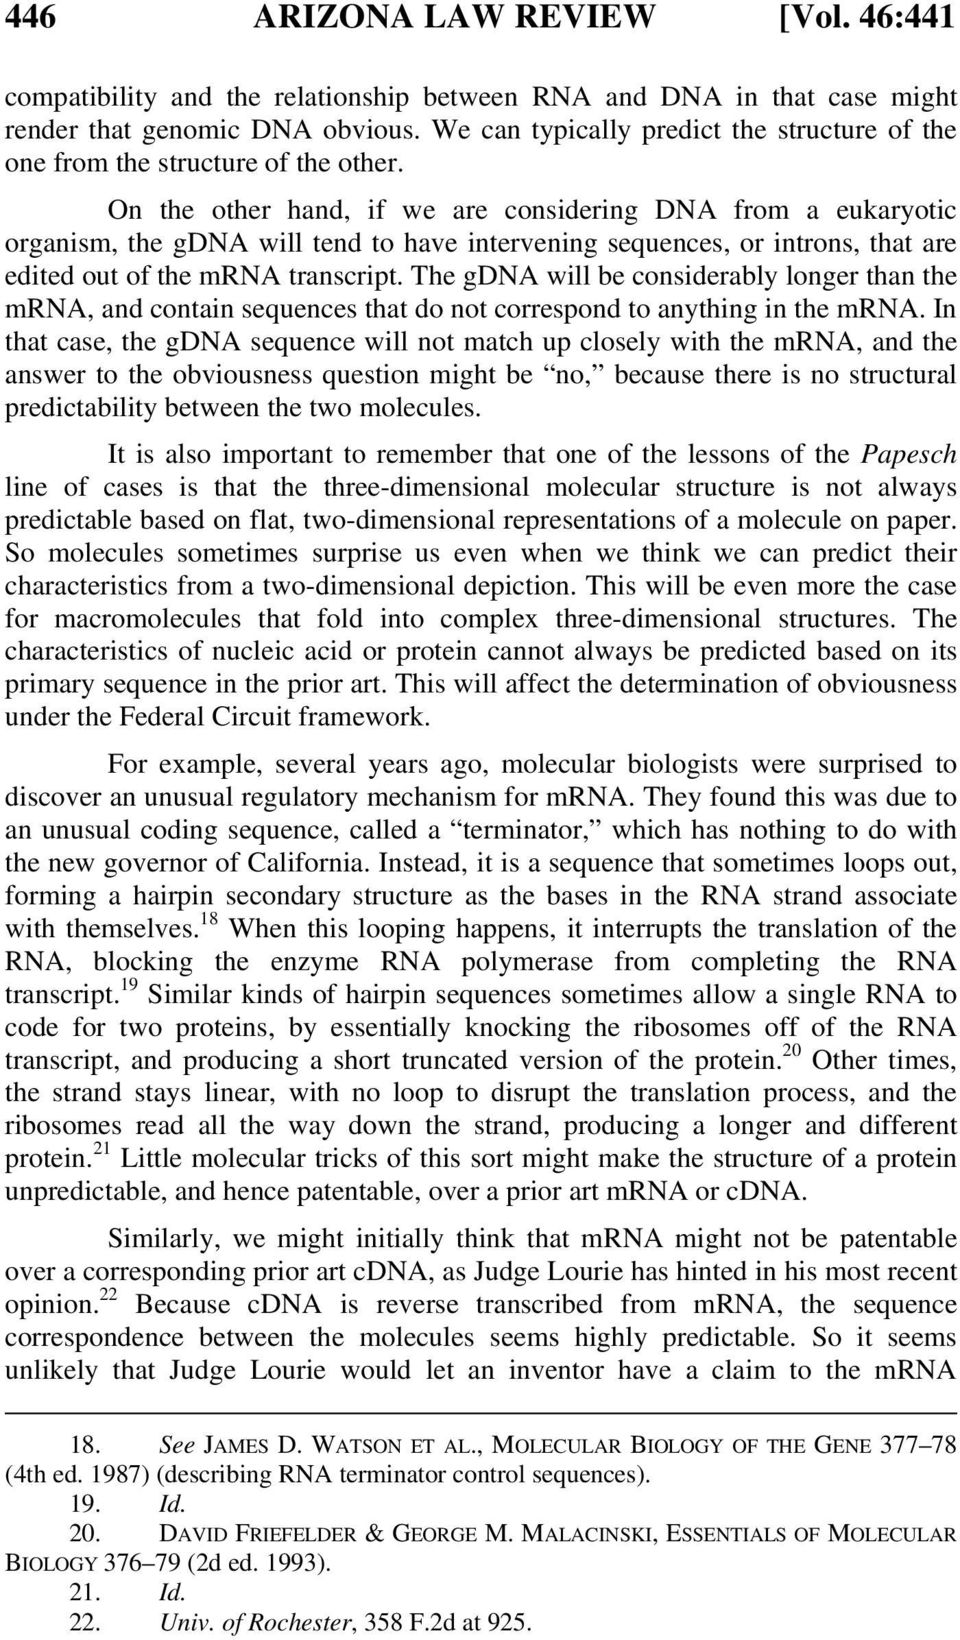 On the other hand, if we are considering DNA from a eukaryotic organism, the gdna will tend to have intervening sequences, or introns, that are edited out of the mrna transcript.